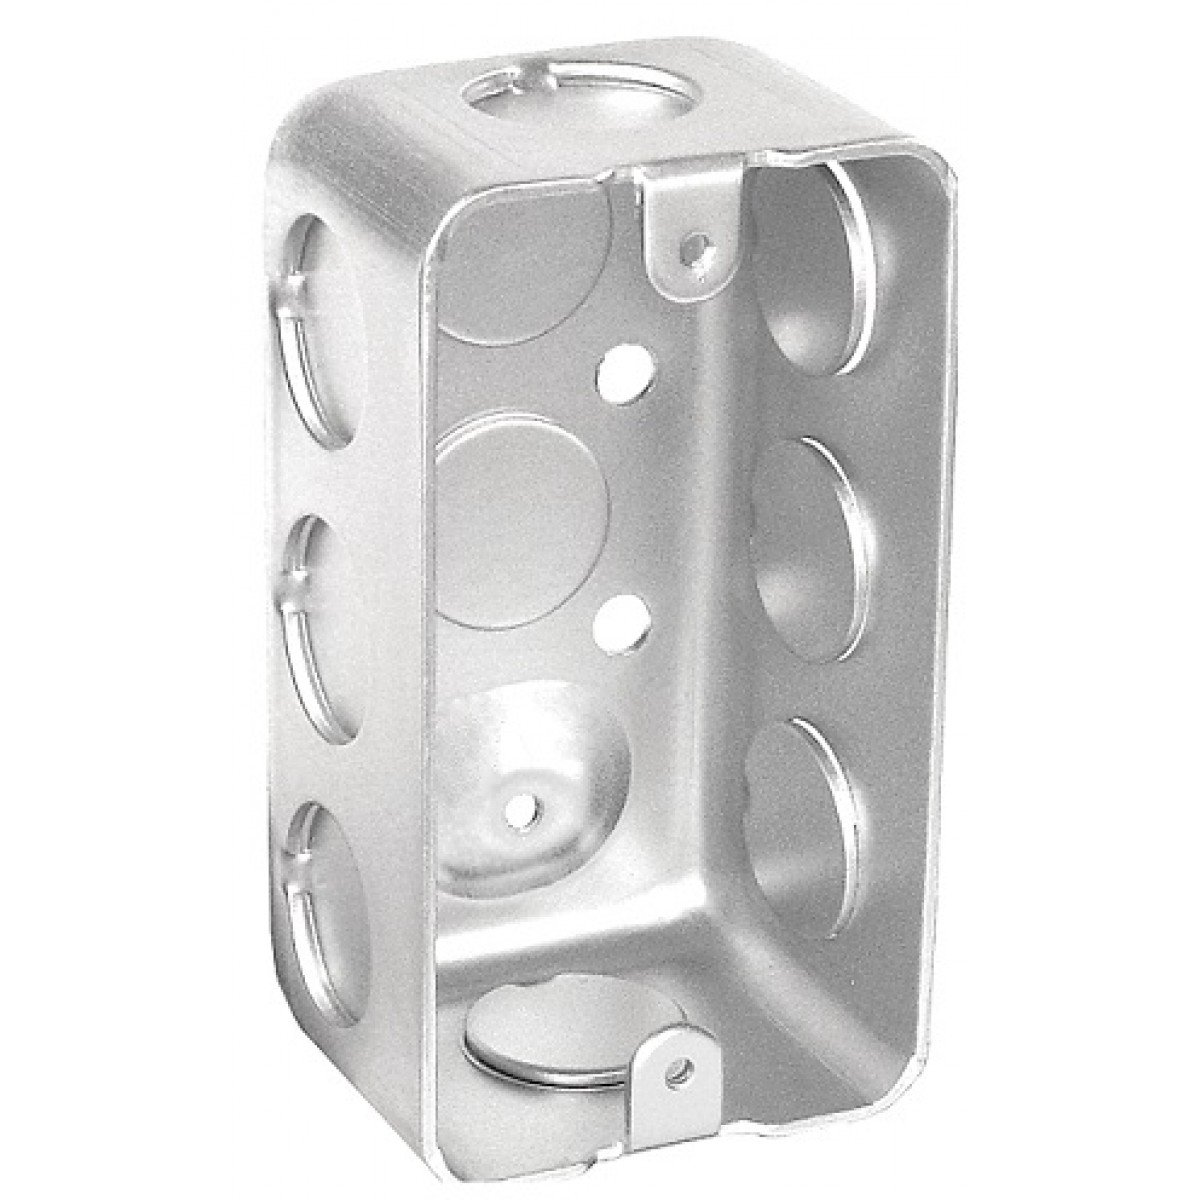 10 Pcs, .0625 Galvanized Steel 1-7/8 In. Deep Handy Utility Box w/(8) 1/2 In. Side Knockouts; (2) 1/2 In. Bottom Knockouts For Power Outlets & Switches to Small Places